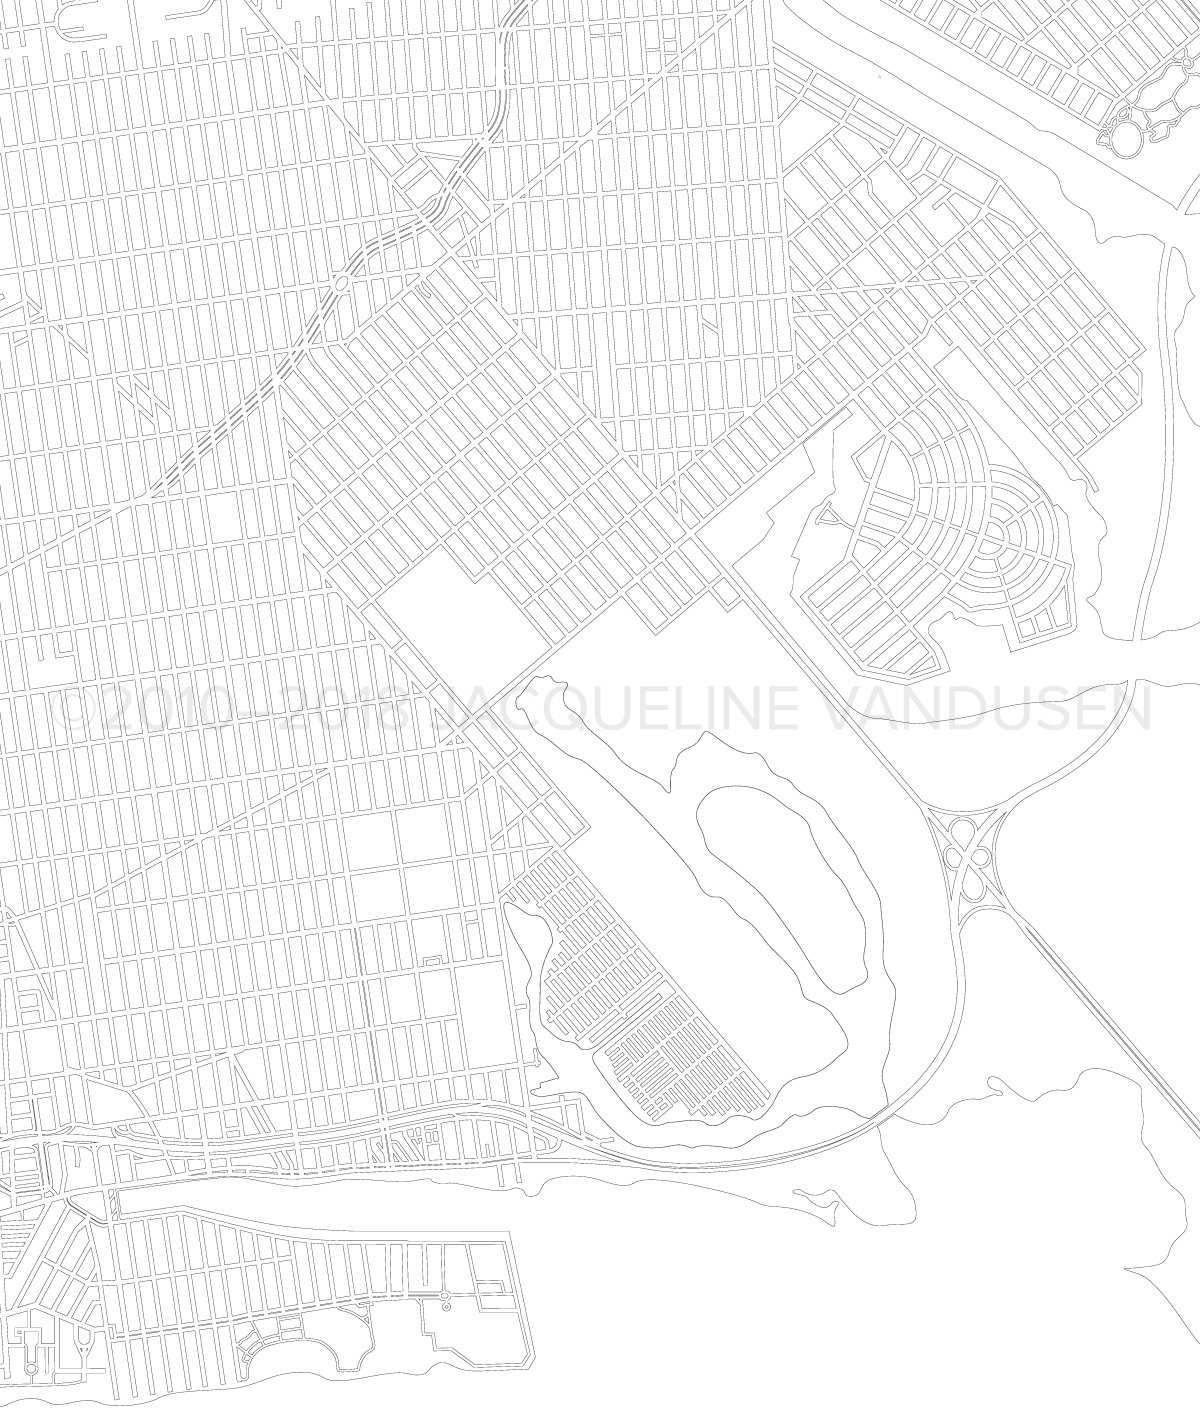 Brooklyn Map (Close-up of southeast)